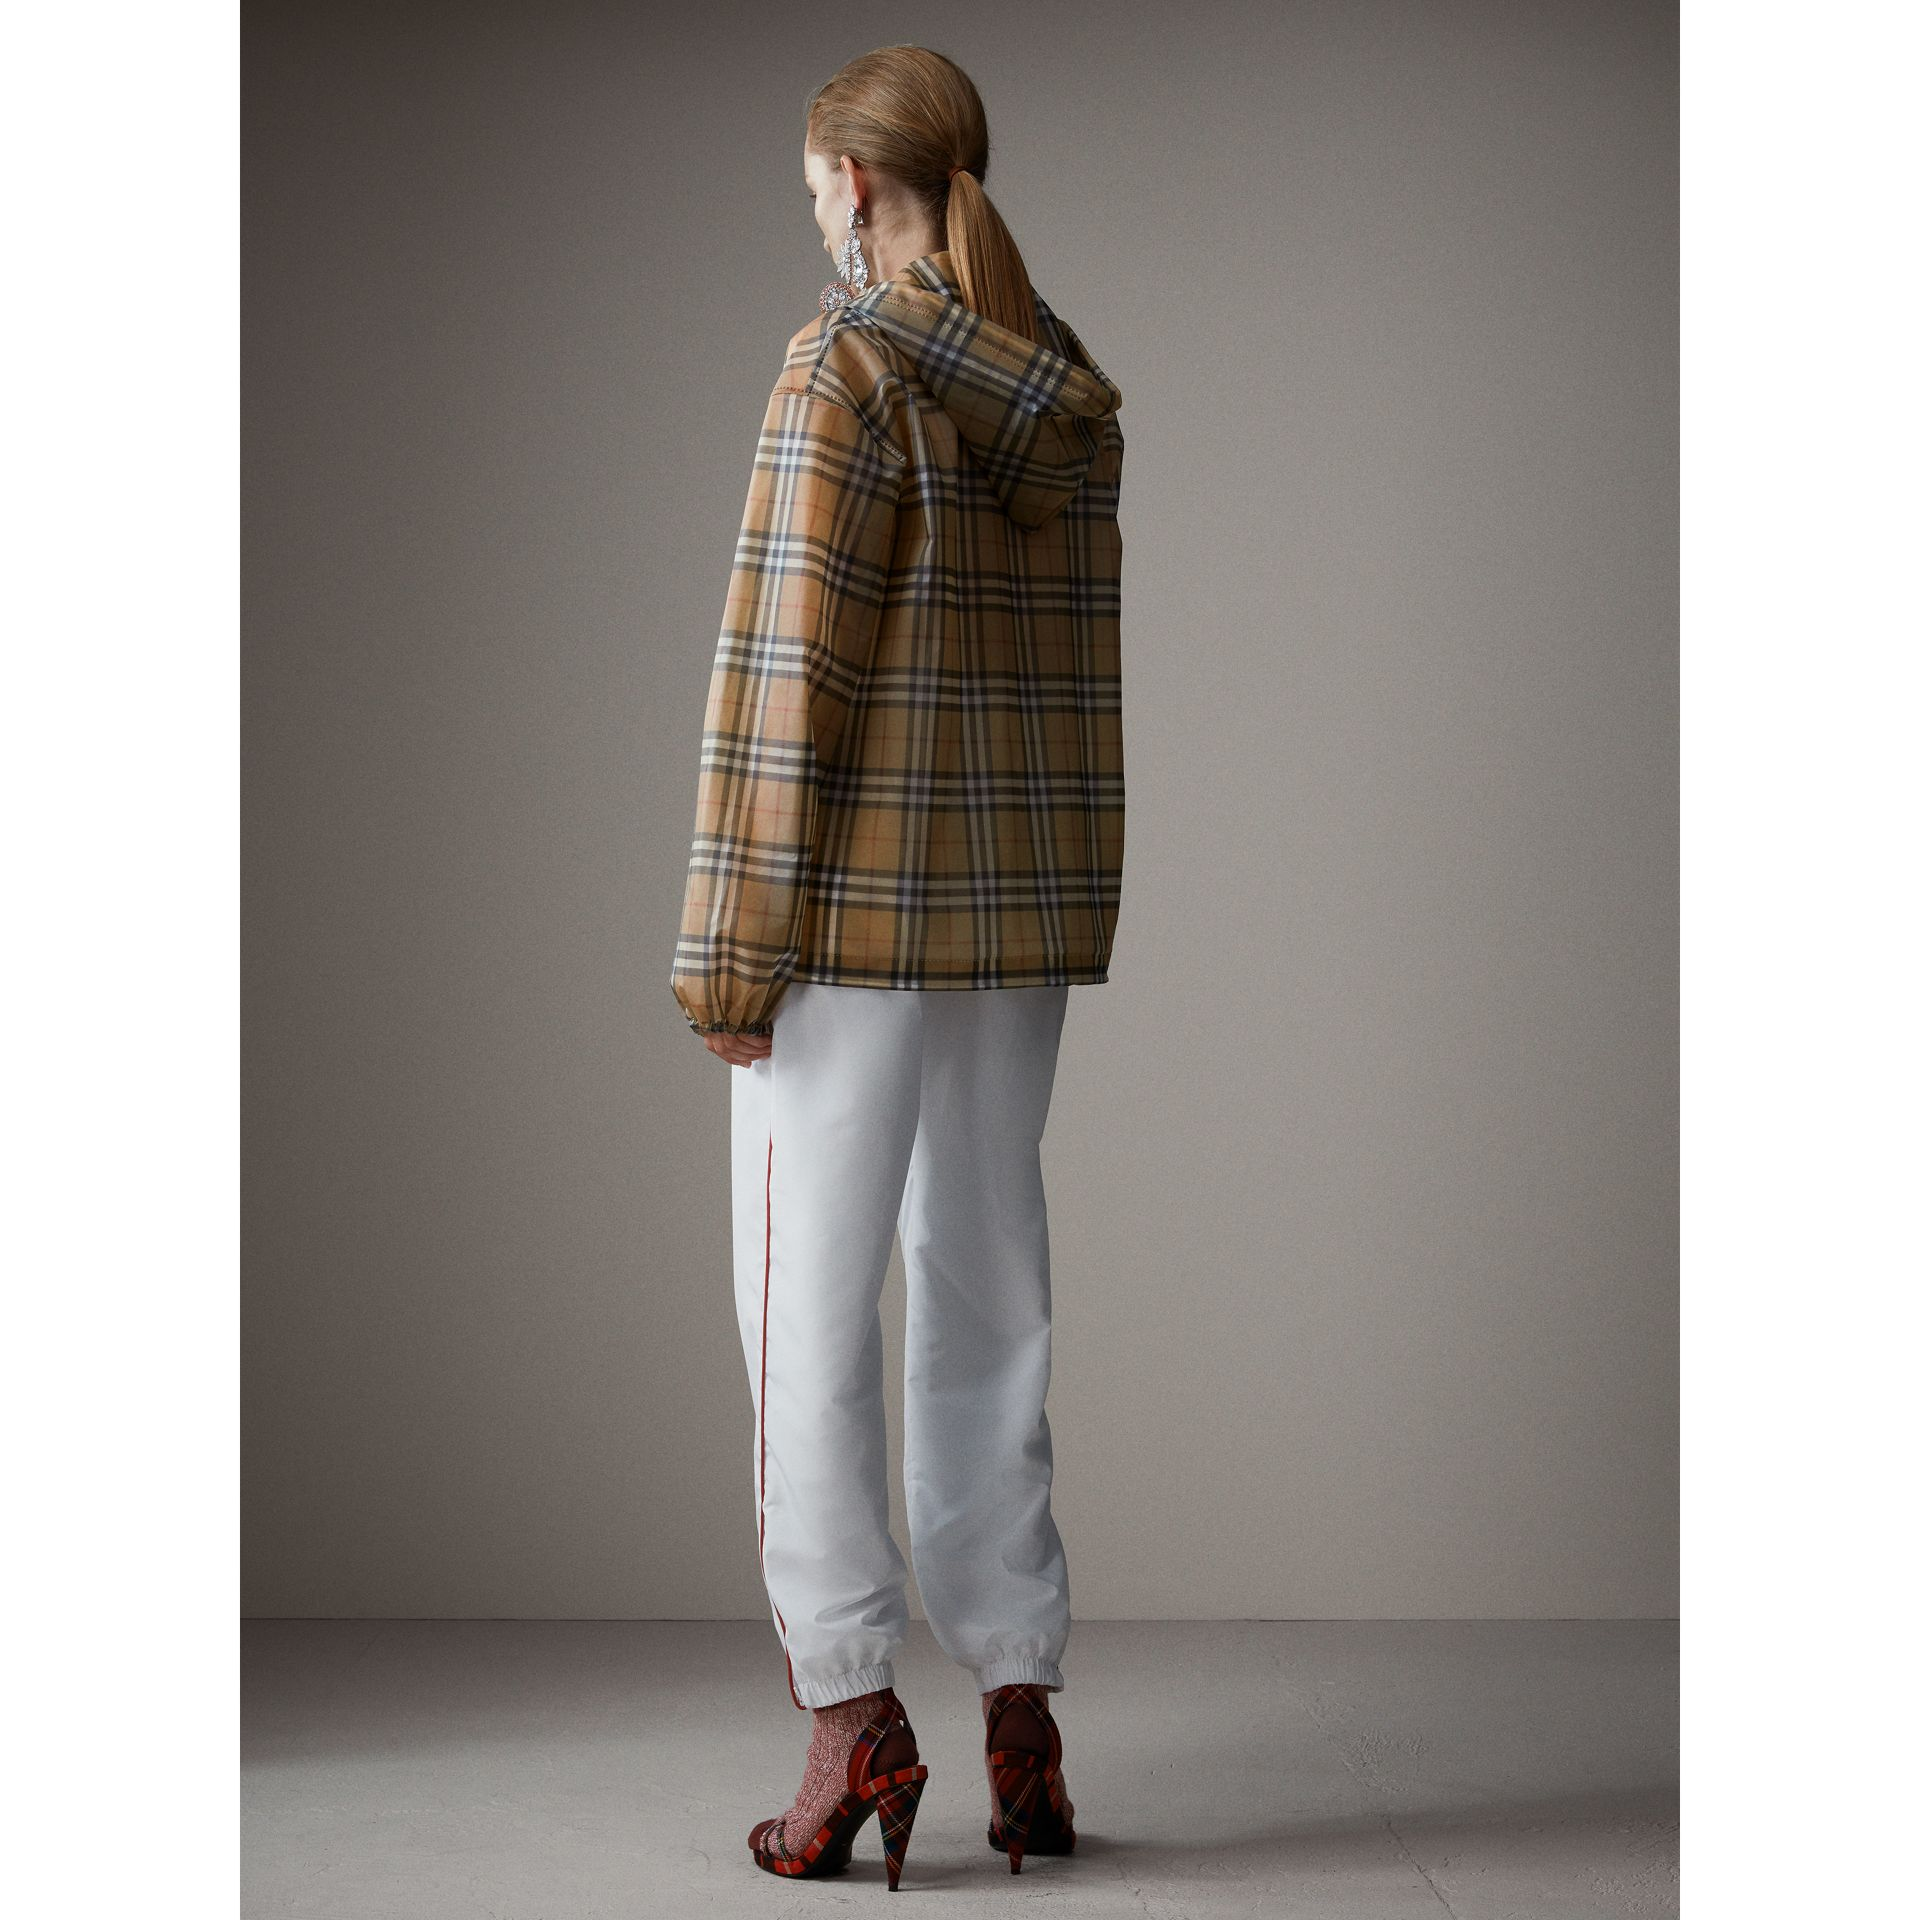 Vintage Check Soft-touch Plastic Cagoule in Antique Yellow - Women | Burberry Australia - gallery image 2